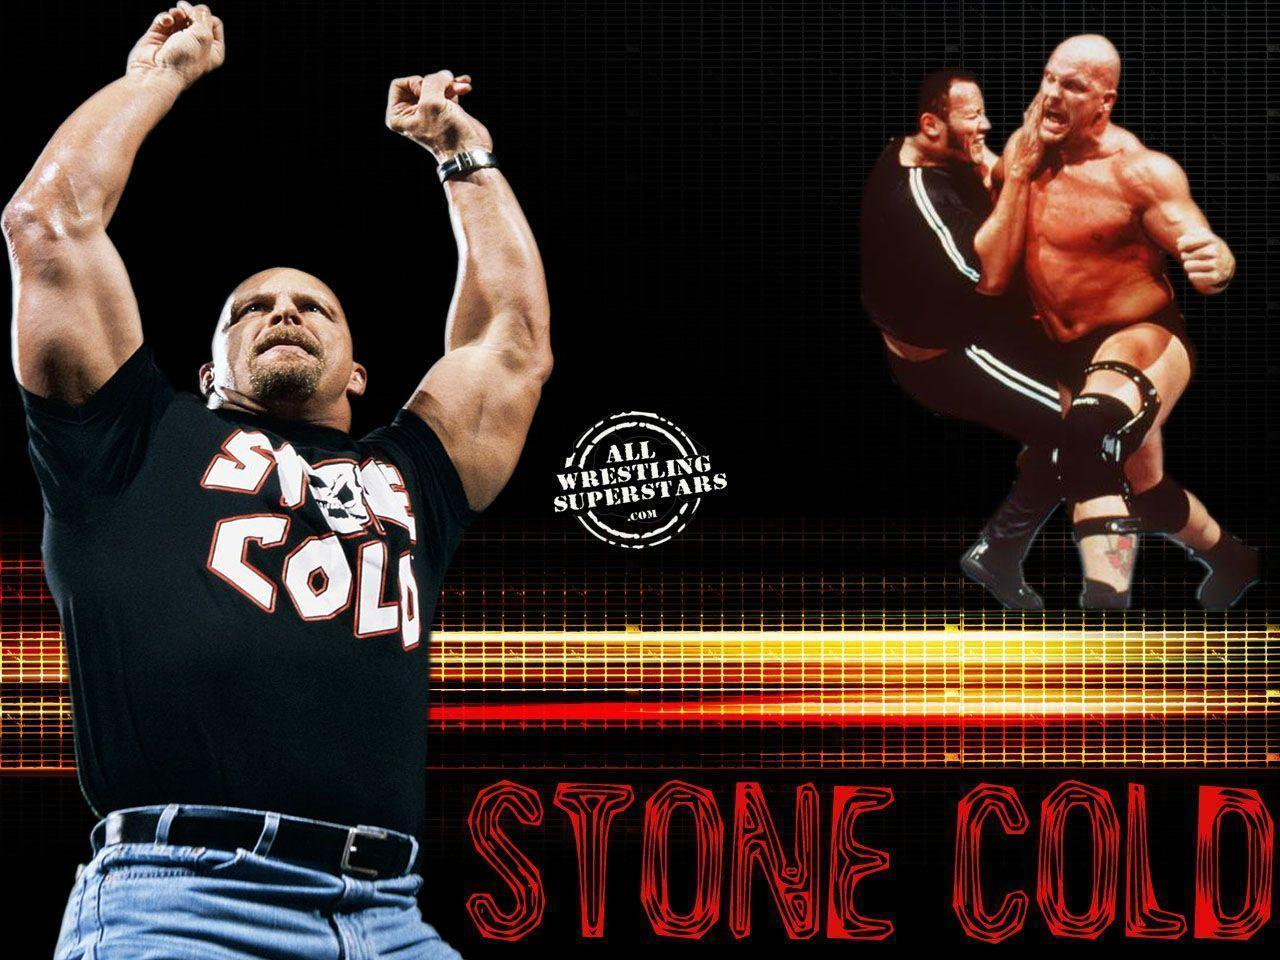 The Rock And Stone Cold Wallpapers Wallpaper Cave